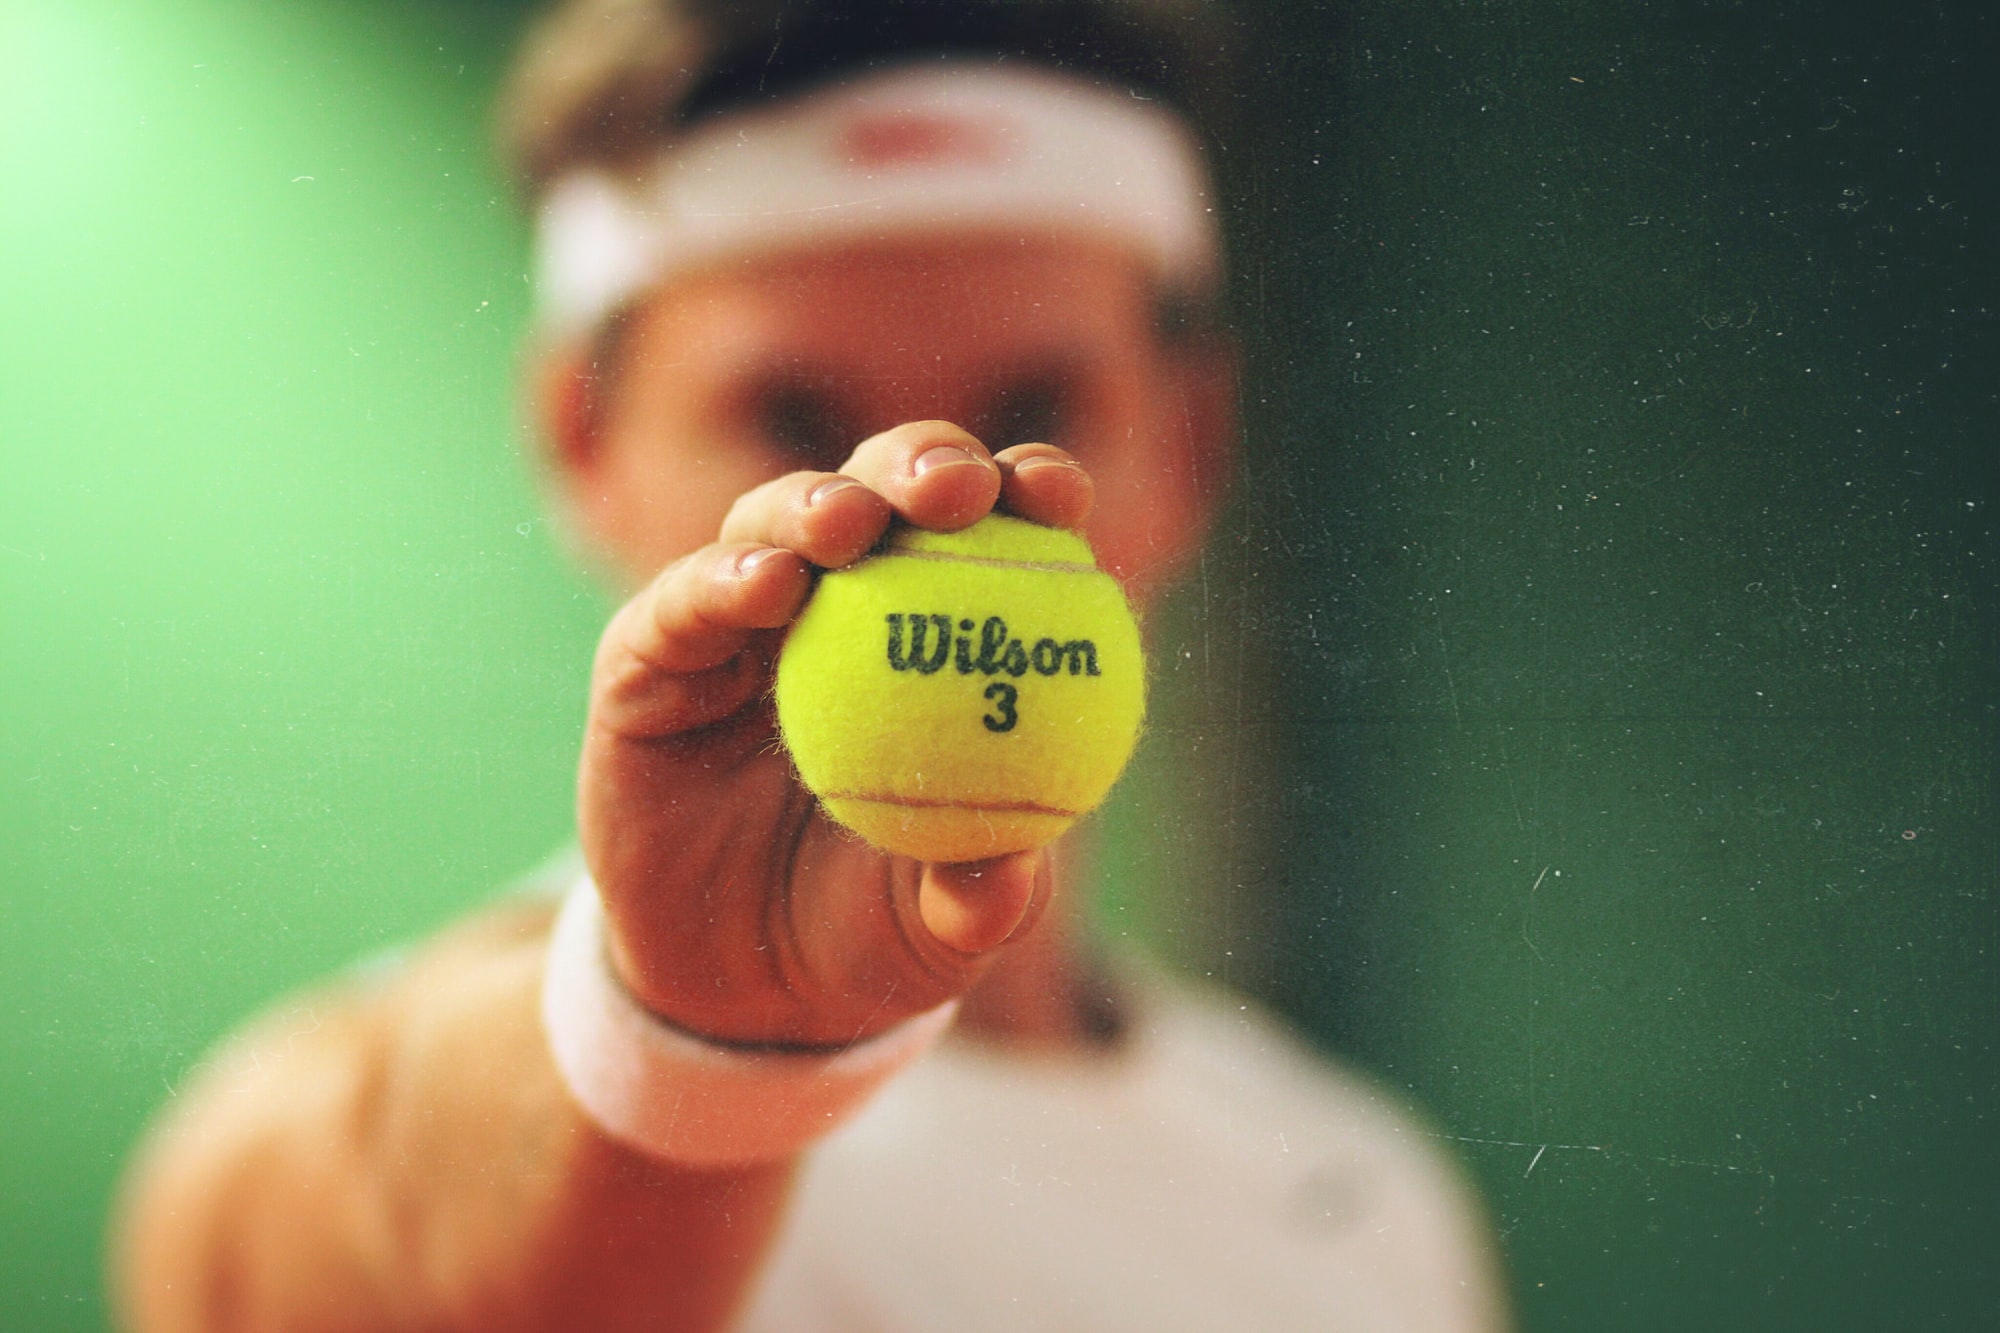 How the International Tennis Federation uses no-code technology to create young tennis stars